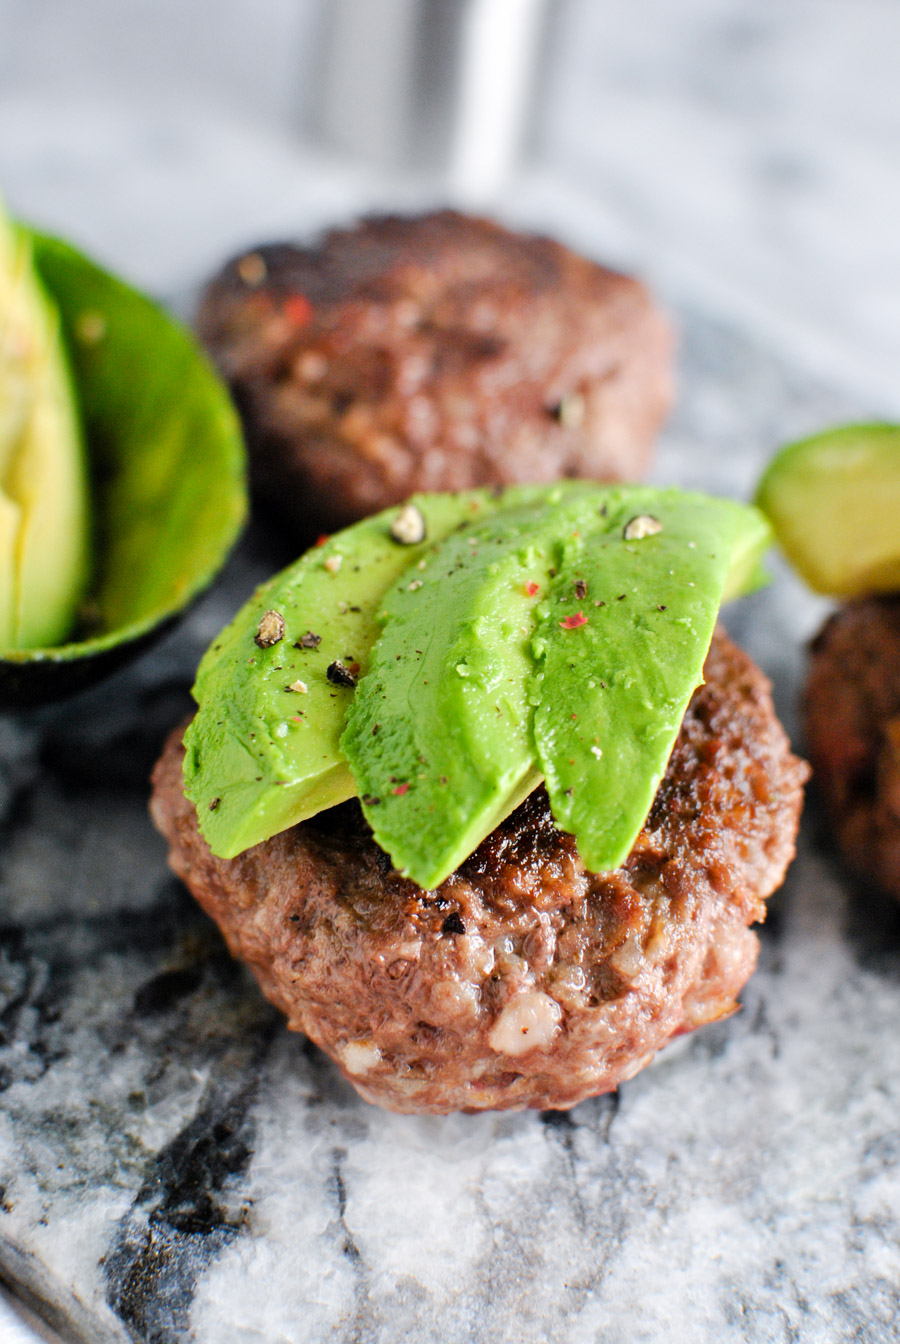 Garlic Bacon Avocado Burger recipe! We love this whole30 approved recipe for a quick & easy emergency meal!   thepikeplacekitchen.com